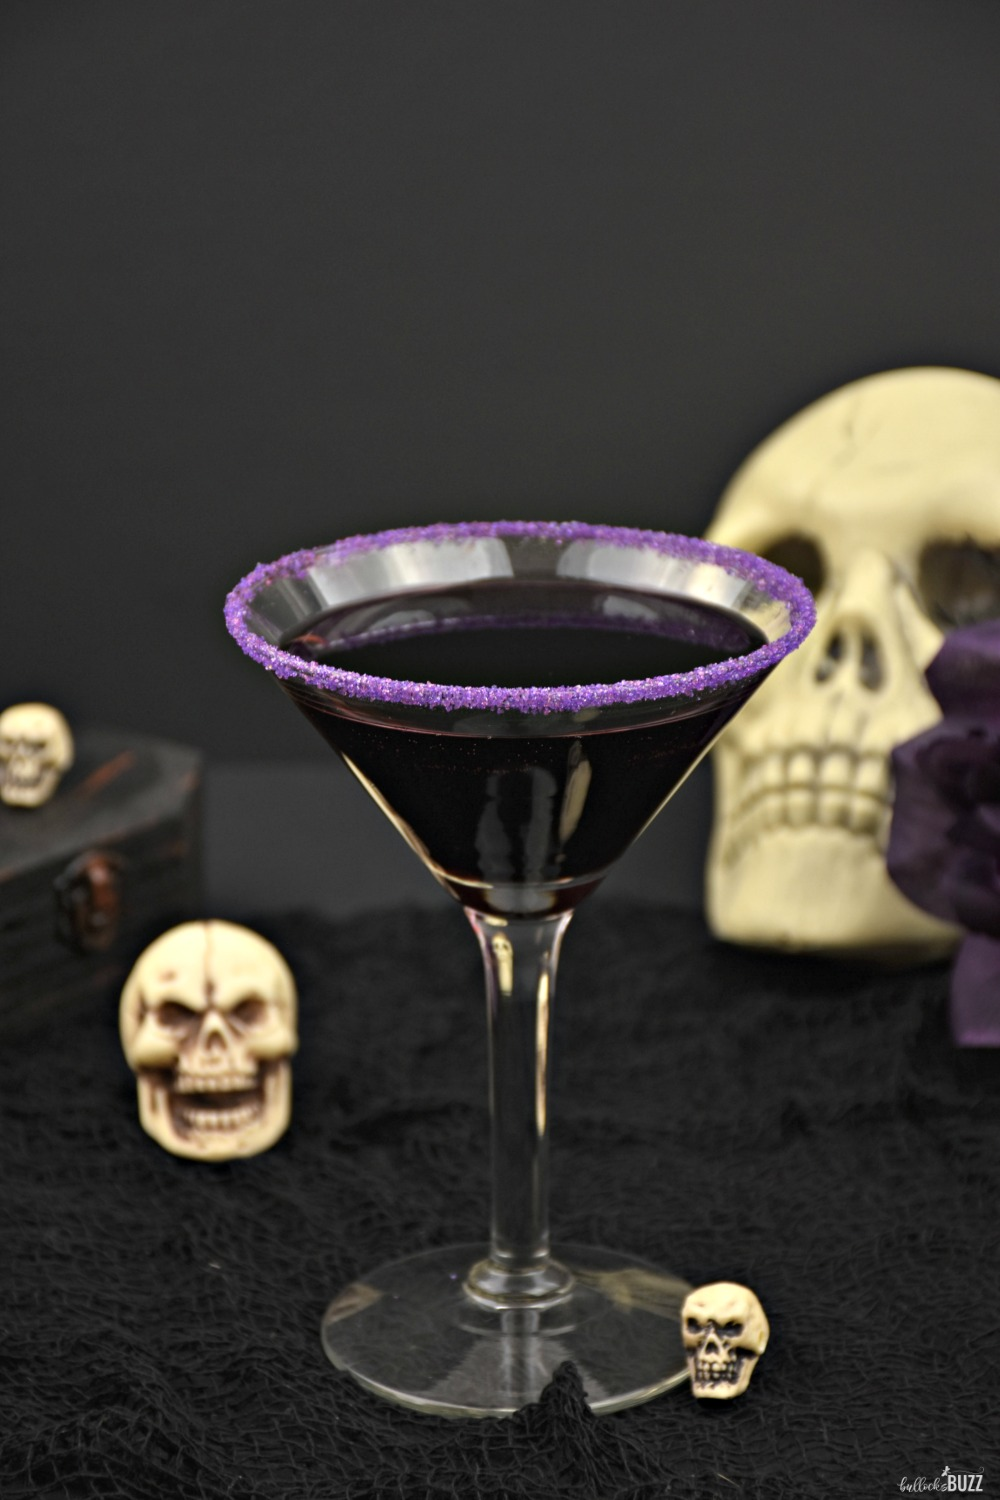 With its deadly delicious taste of cranberries and rum, and its deep purple color, this Gravedigger Halloween cocktail is to die for! Get the recipe on the Bullock's Buzz blog!